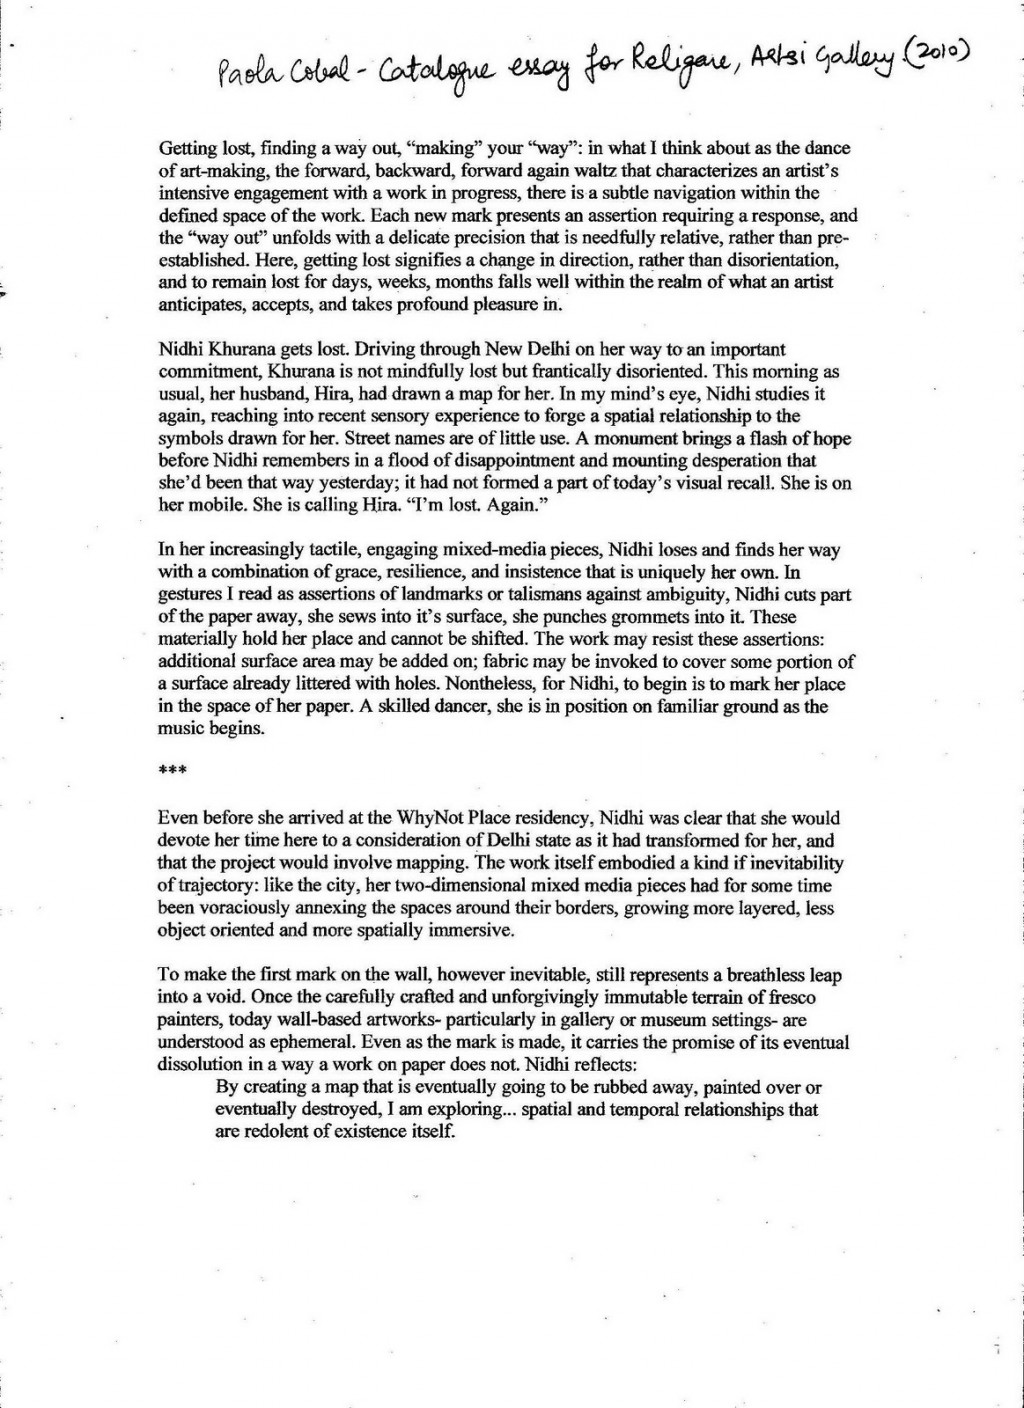 024 Paola2bessay Essay Example Of Incredible Definition About Love Success Beauty Large